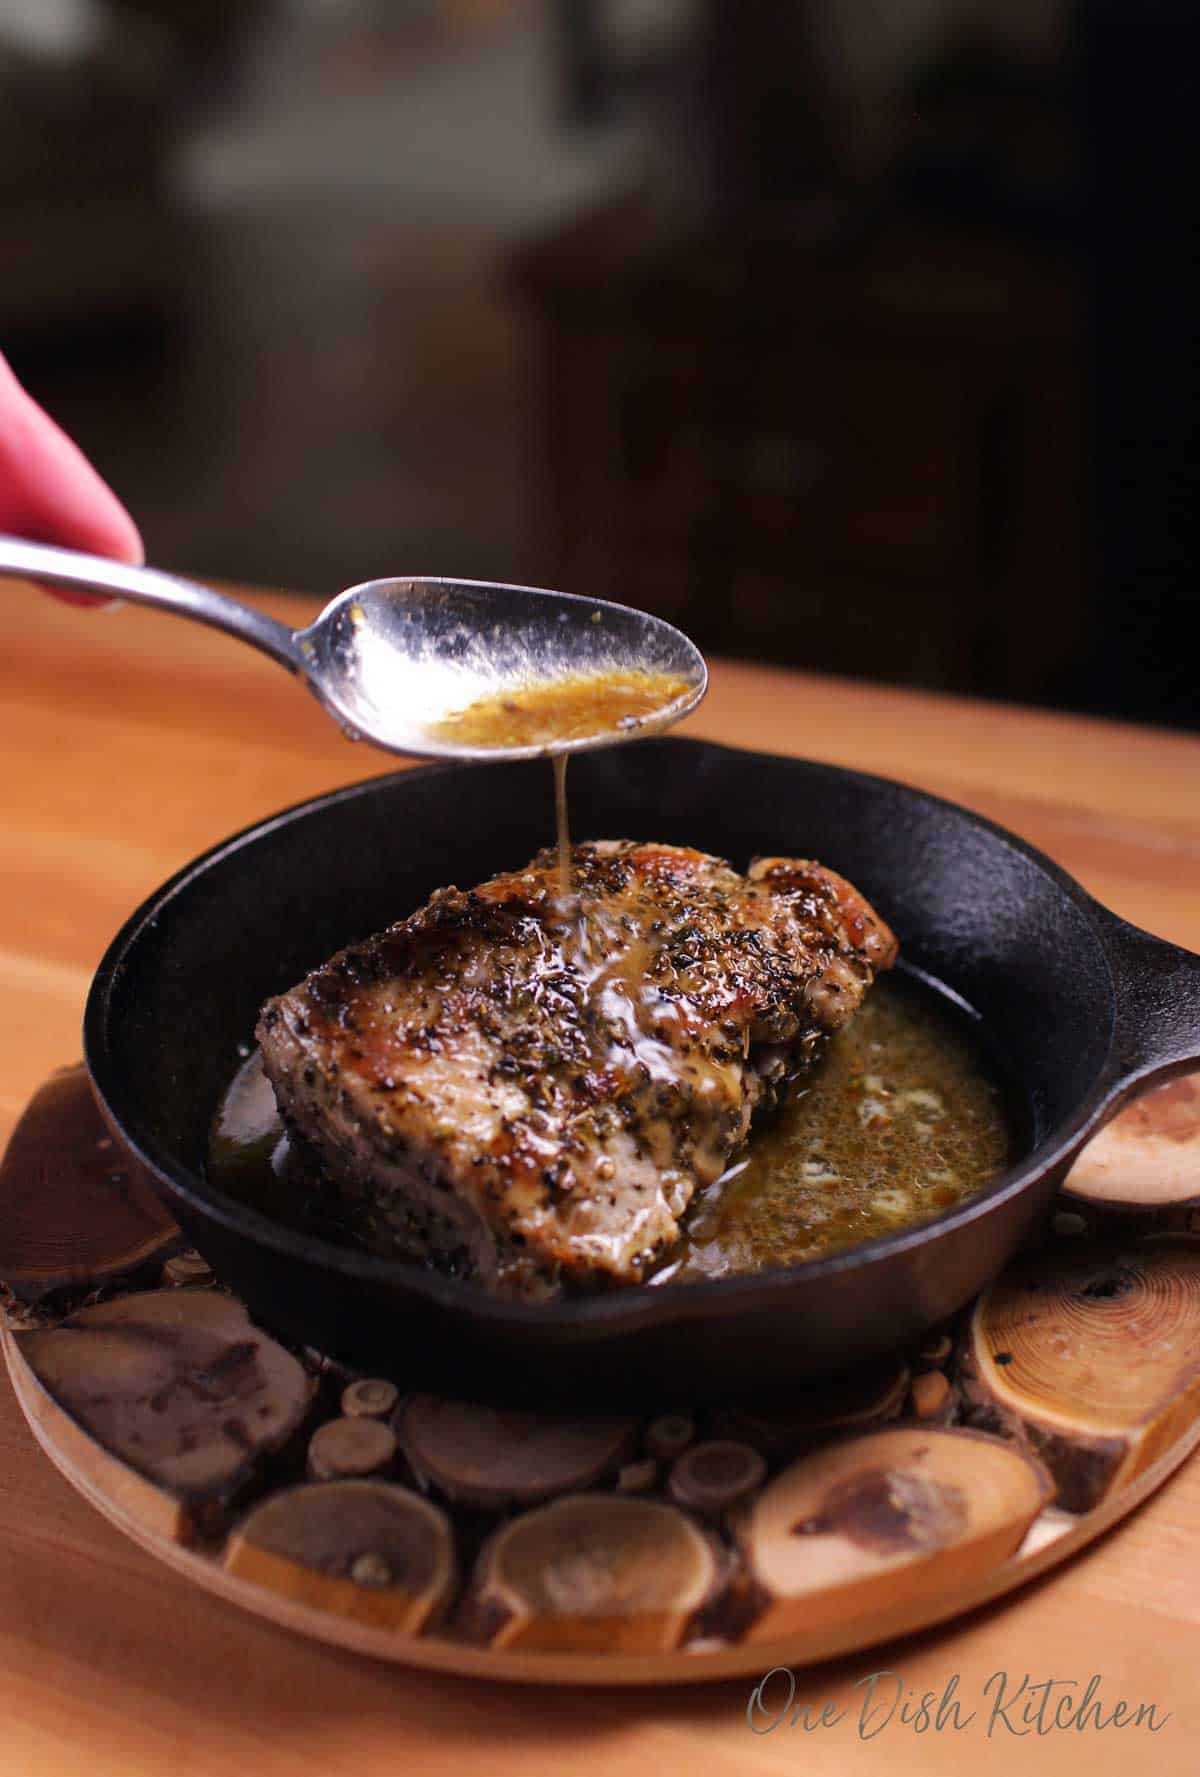 A spoon pouring gravy onto a pork tenderloin in a cast iron skillet on a wooden trivet